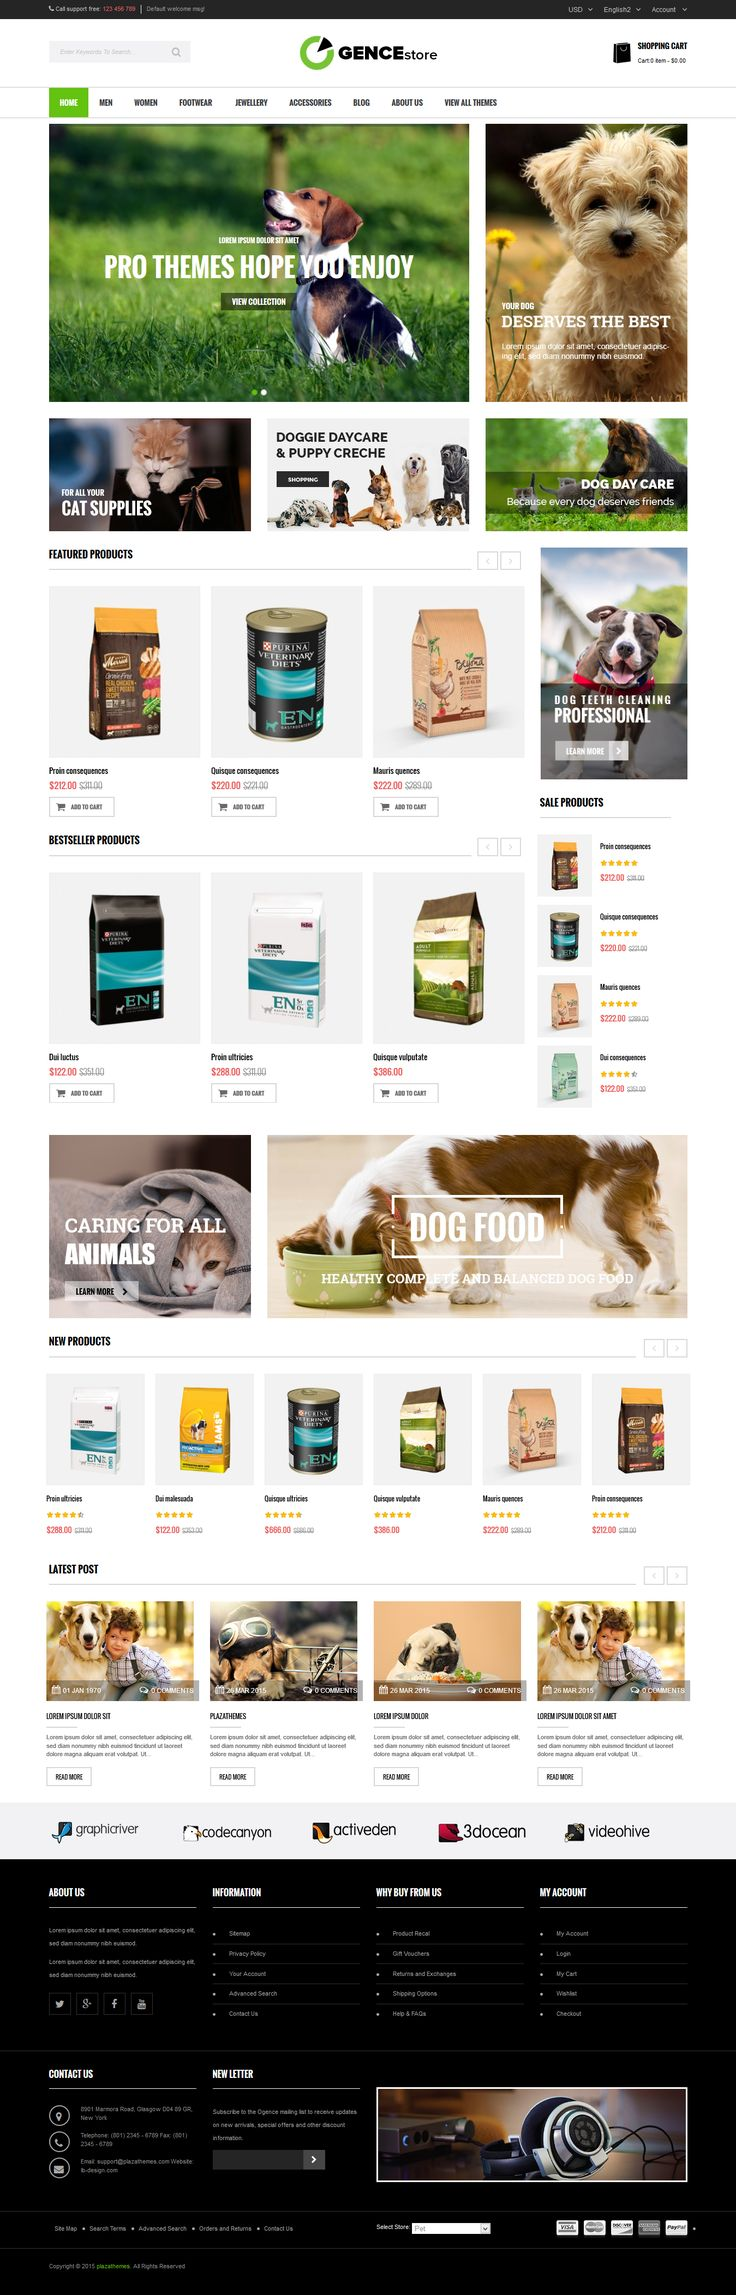 Are you looking for an outstanding #eCommerce #website for your online #store?…